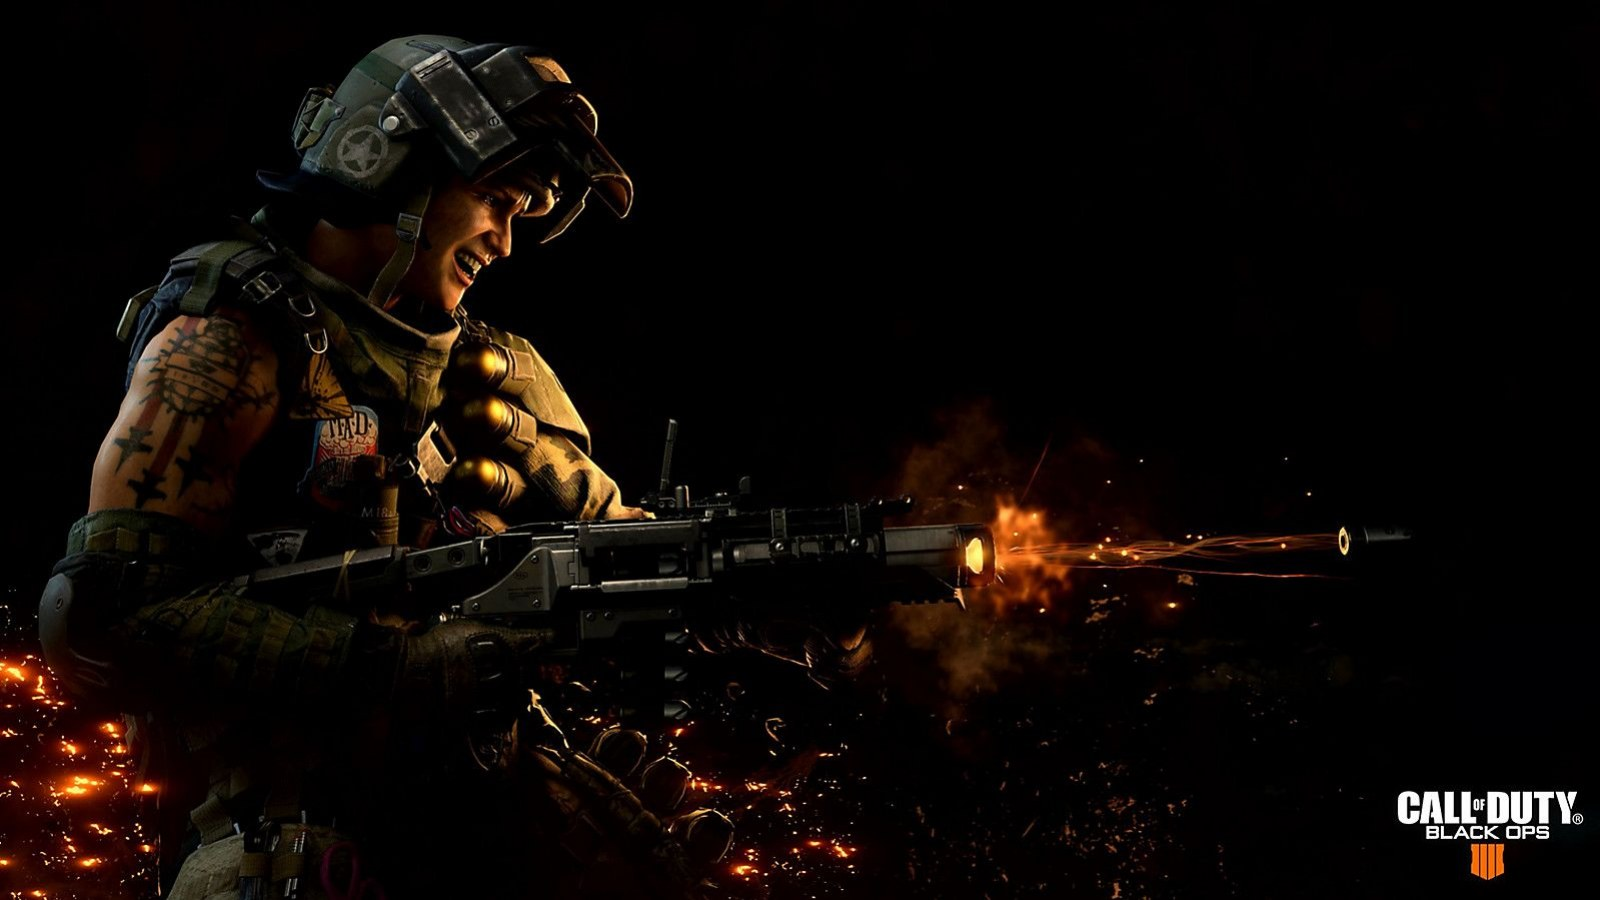 Call of Duty Black Ops 4' Weapon Loadout Guide: When Can You